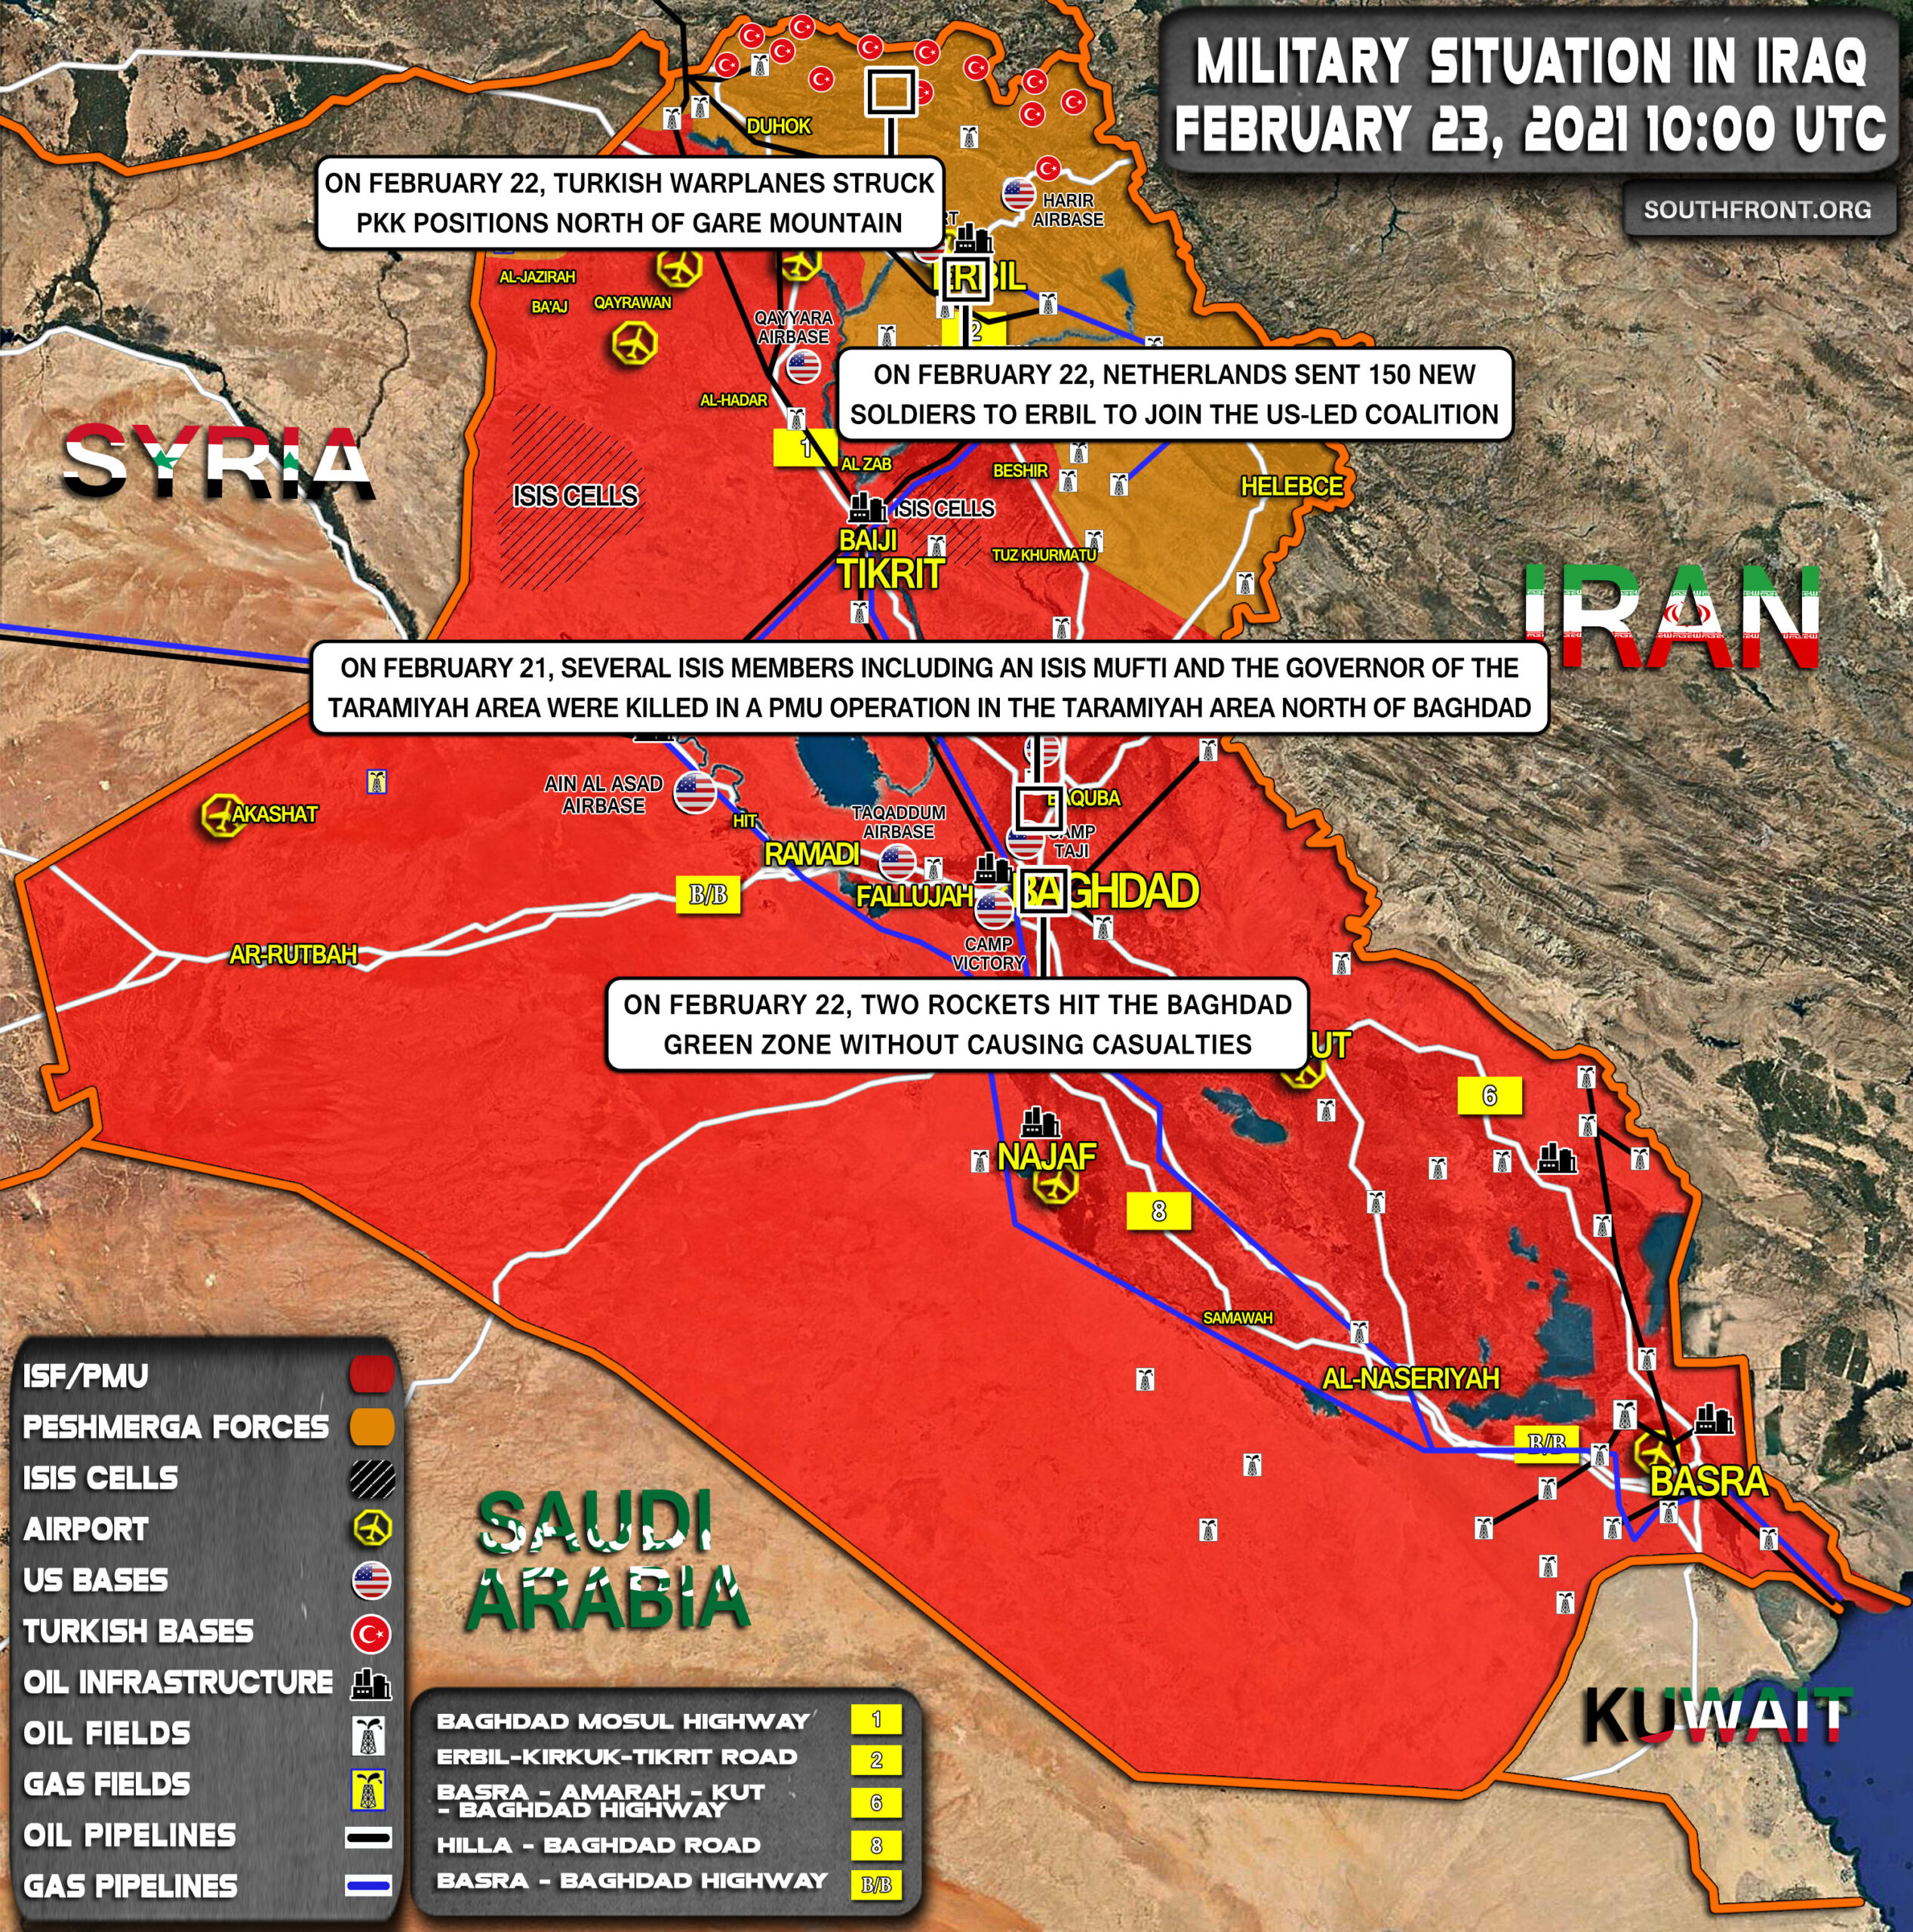 Military Situation In Iraq On February 23, 2021 (Map Update)